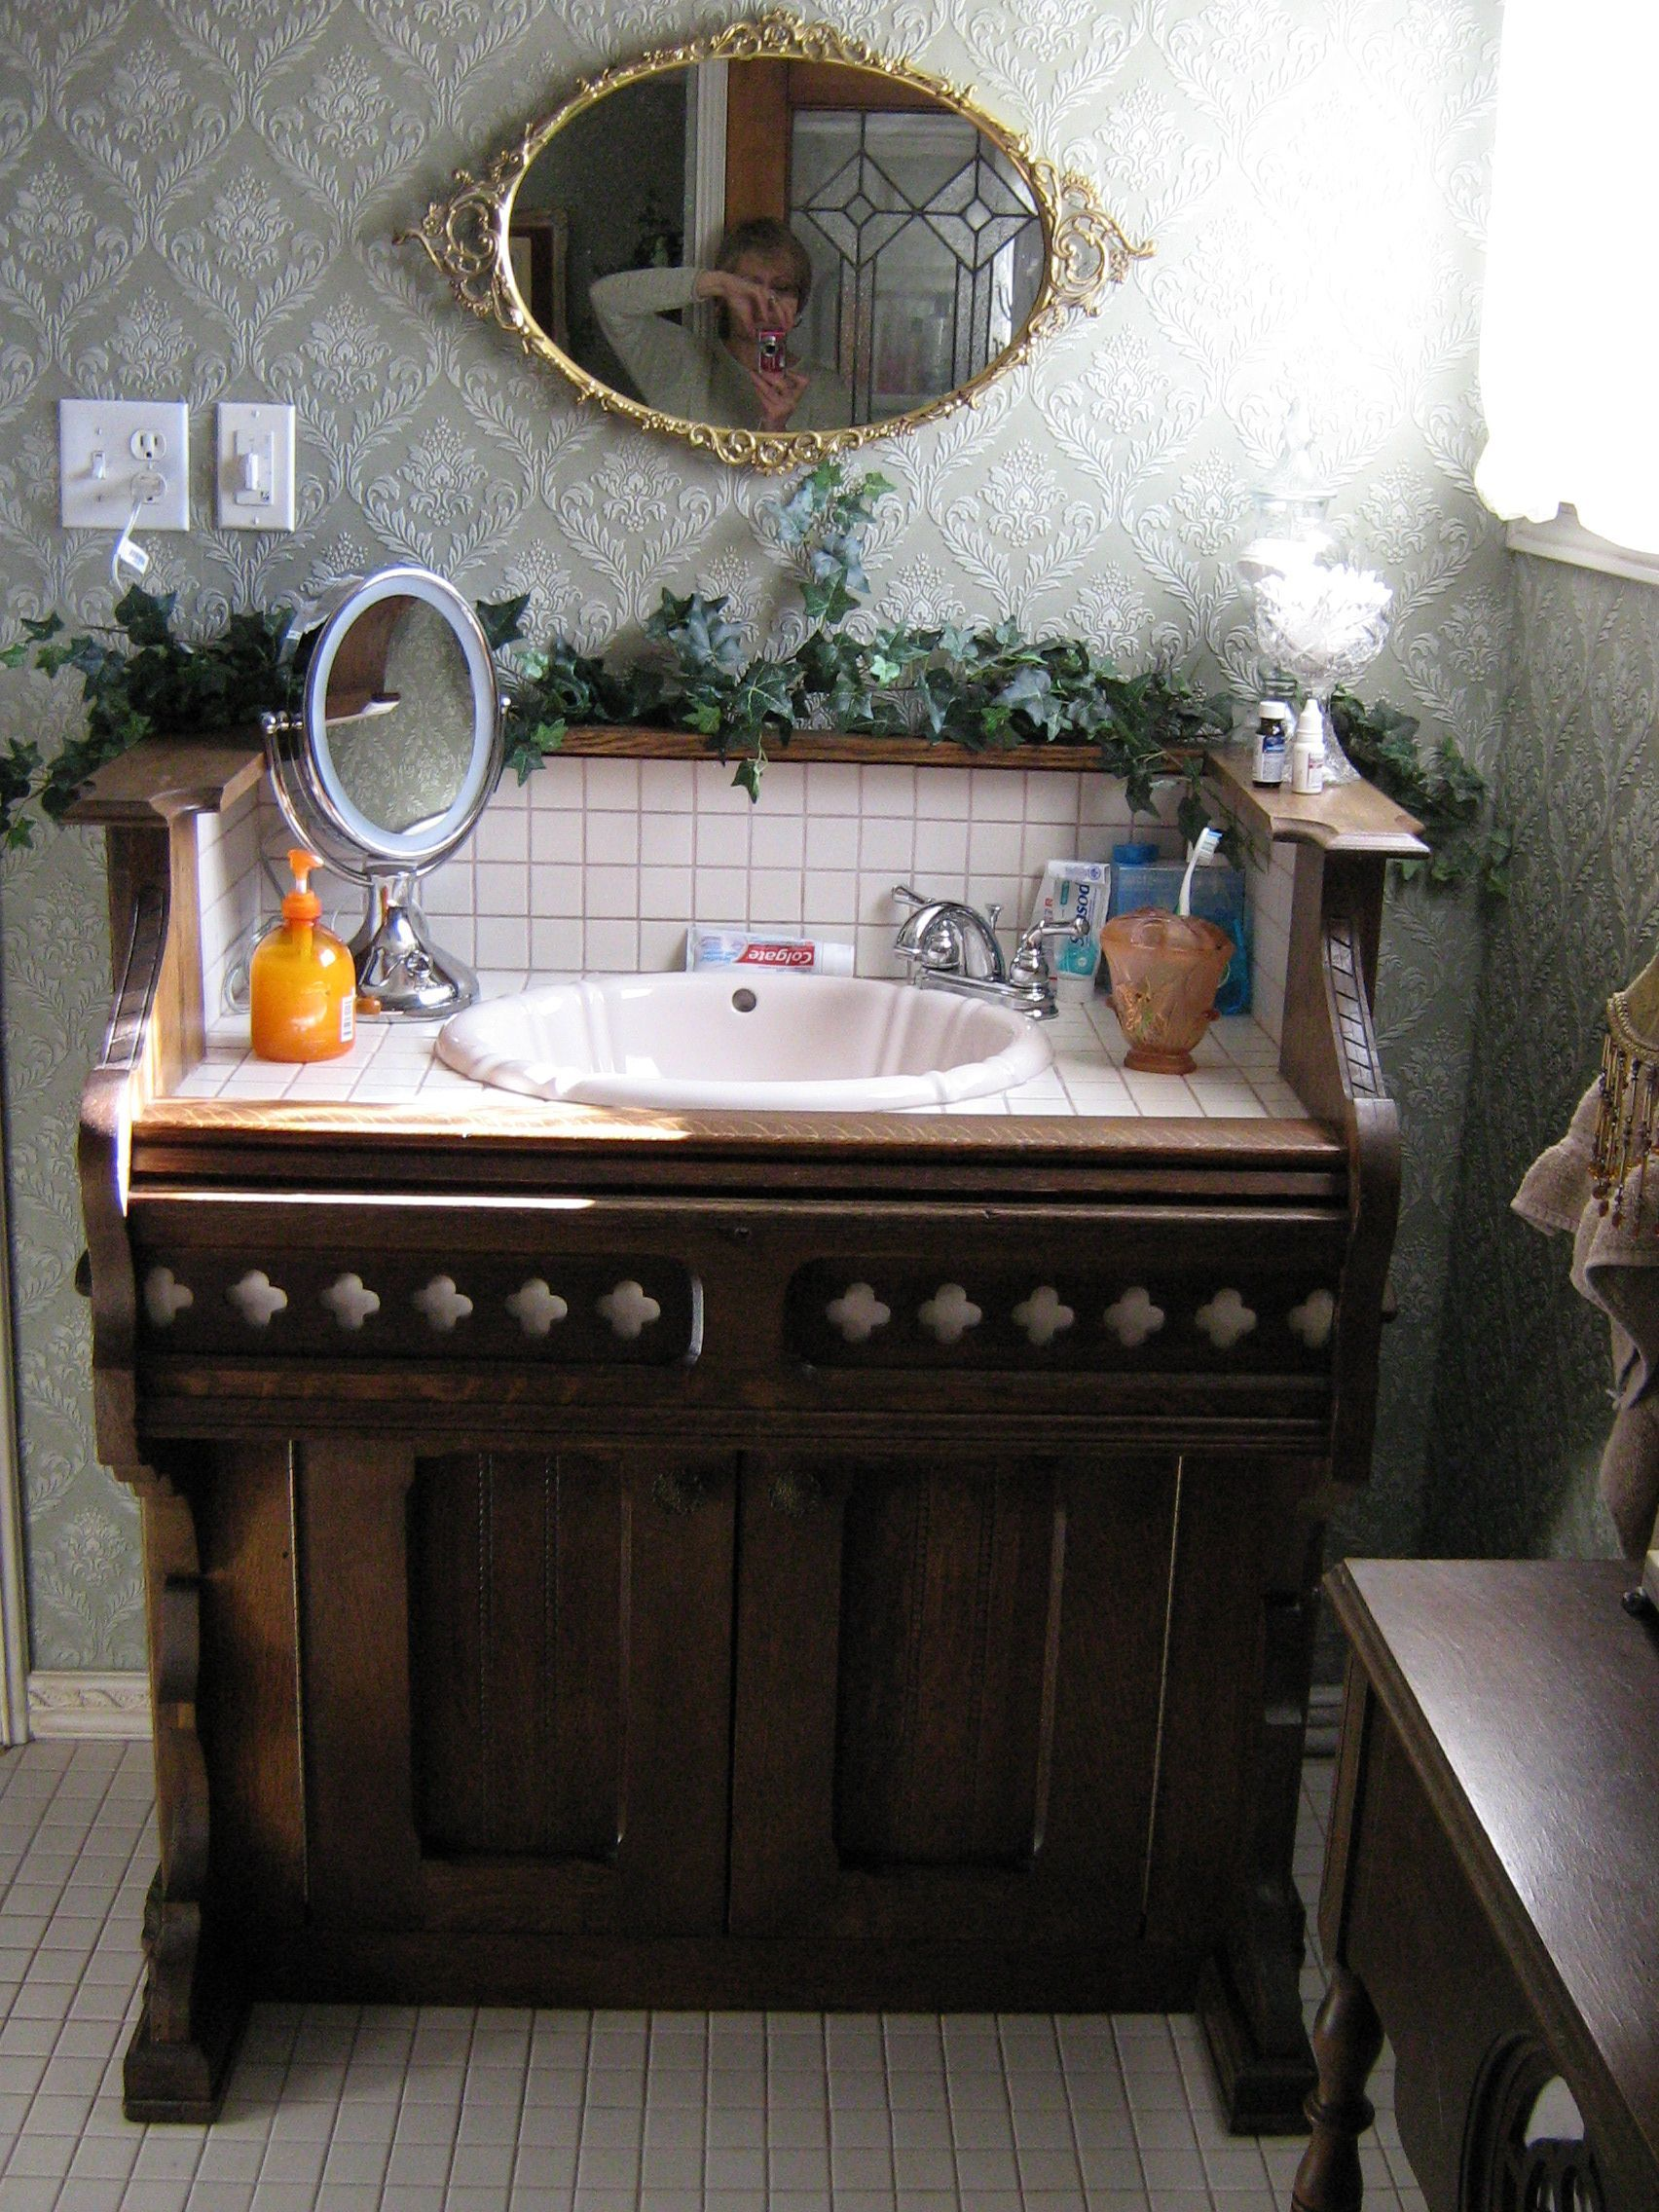 Ensuite Bath Vanity Fabricated From An Antique Pump Organ With